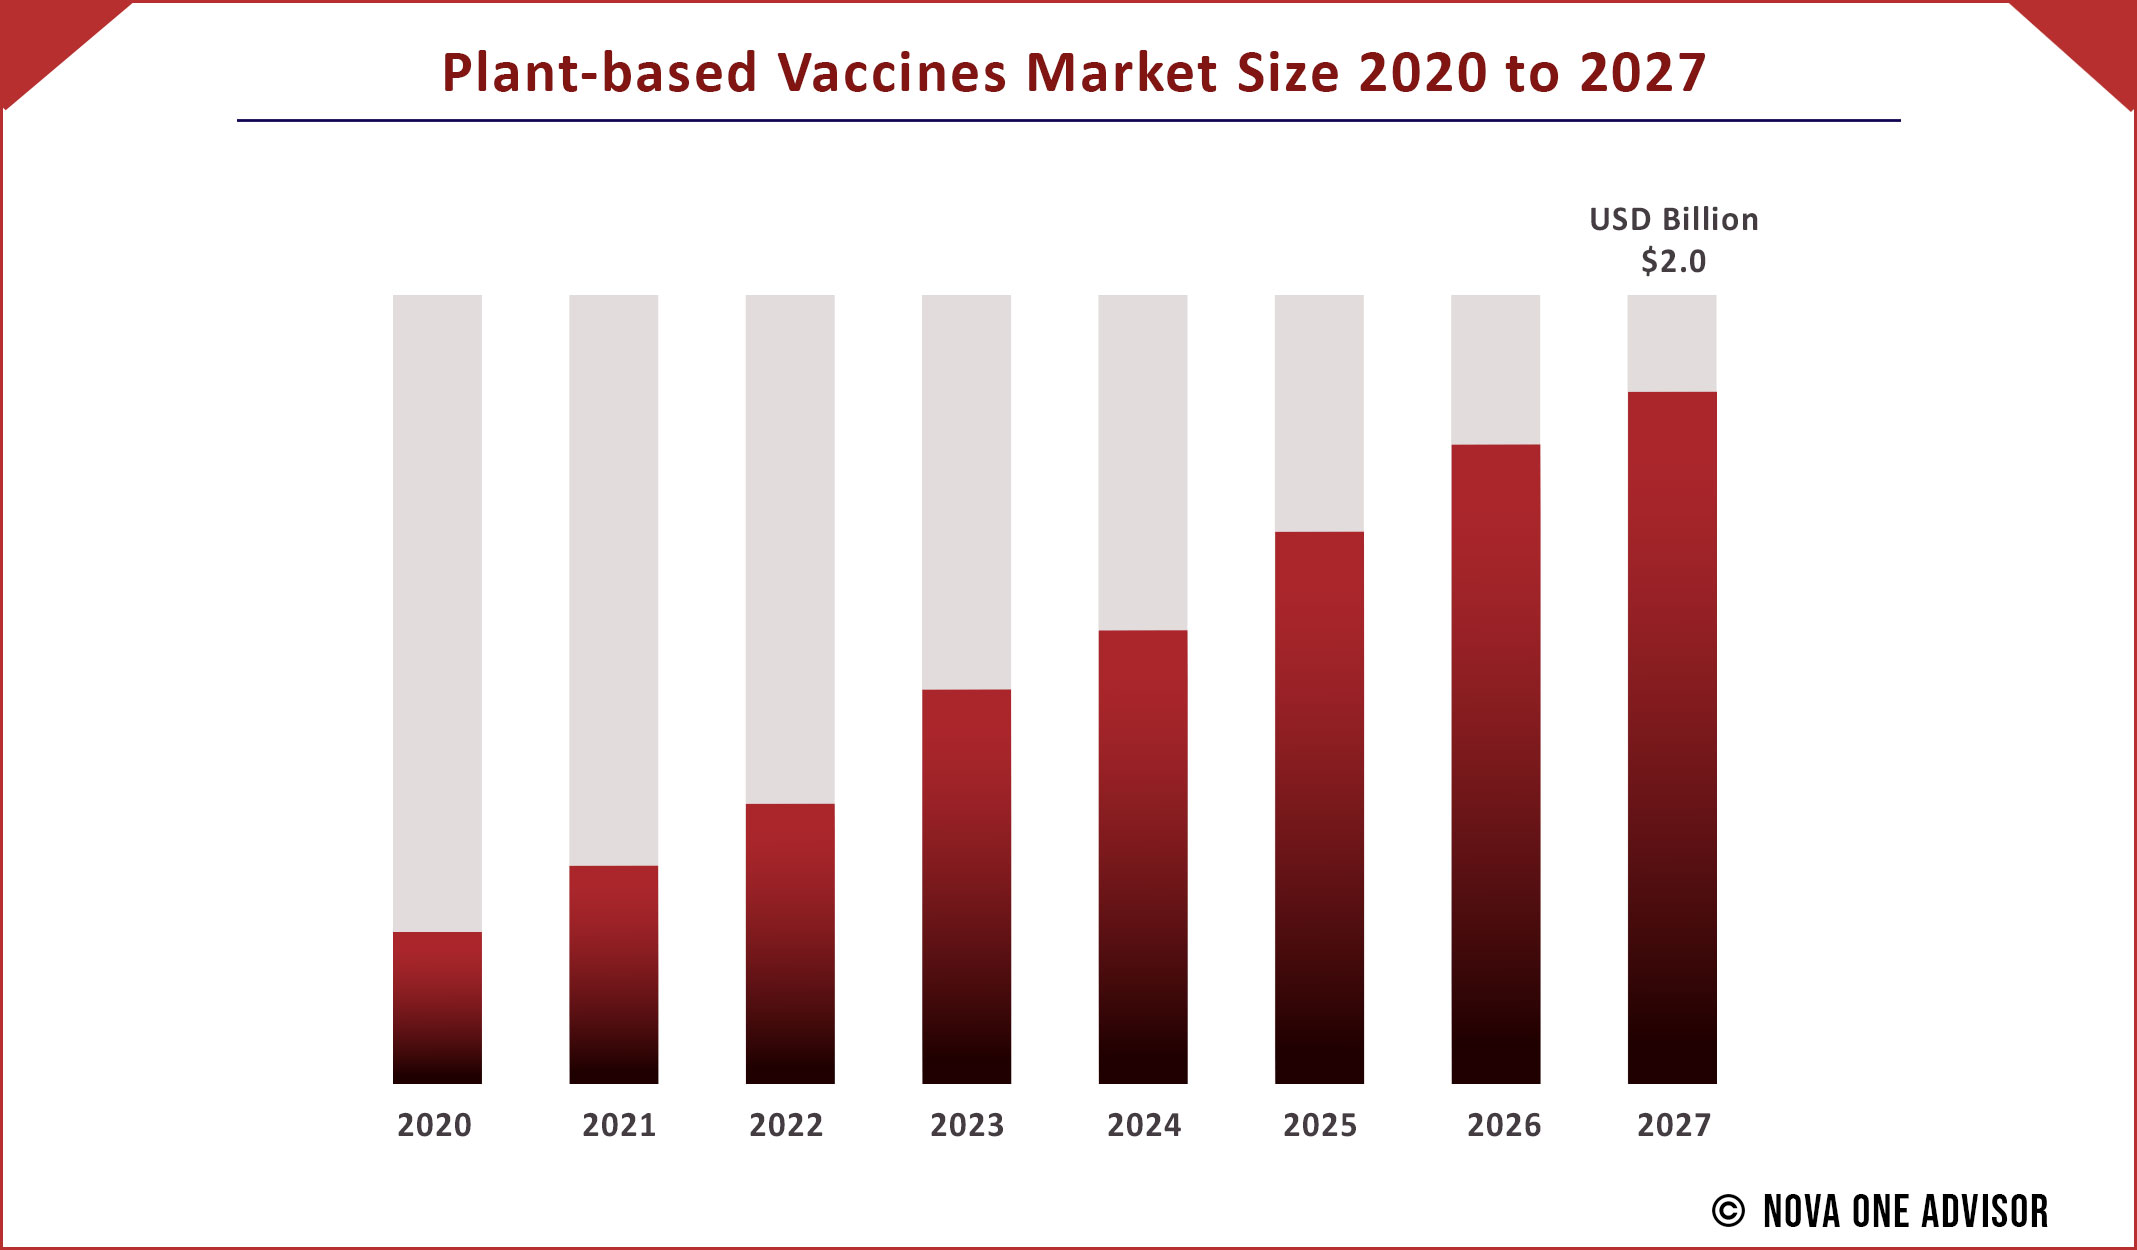 Plant-based Vaccines Market Size 2020 to 2027